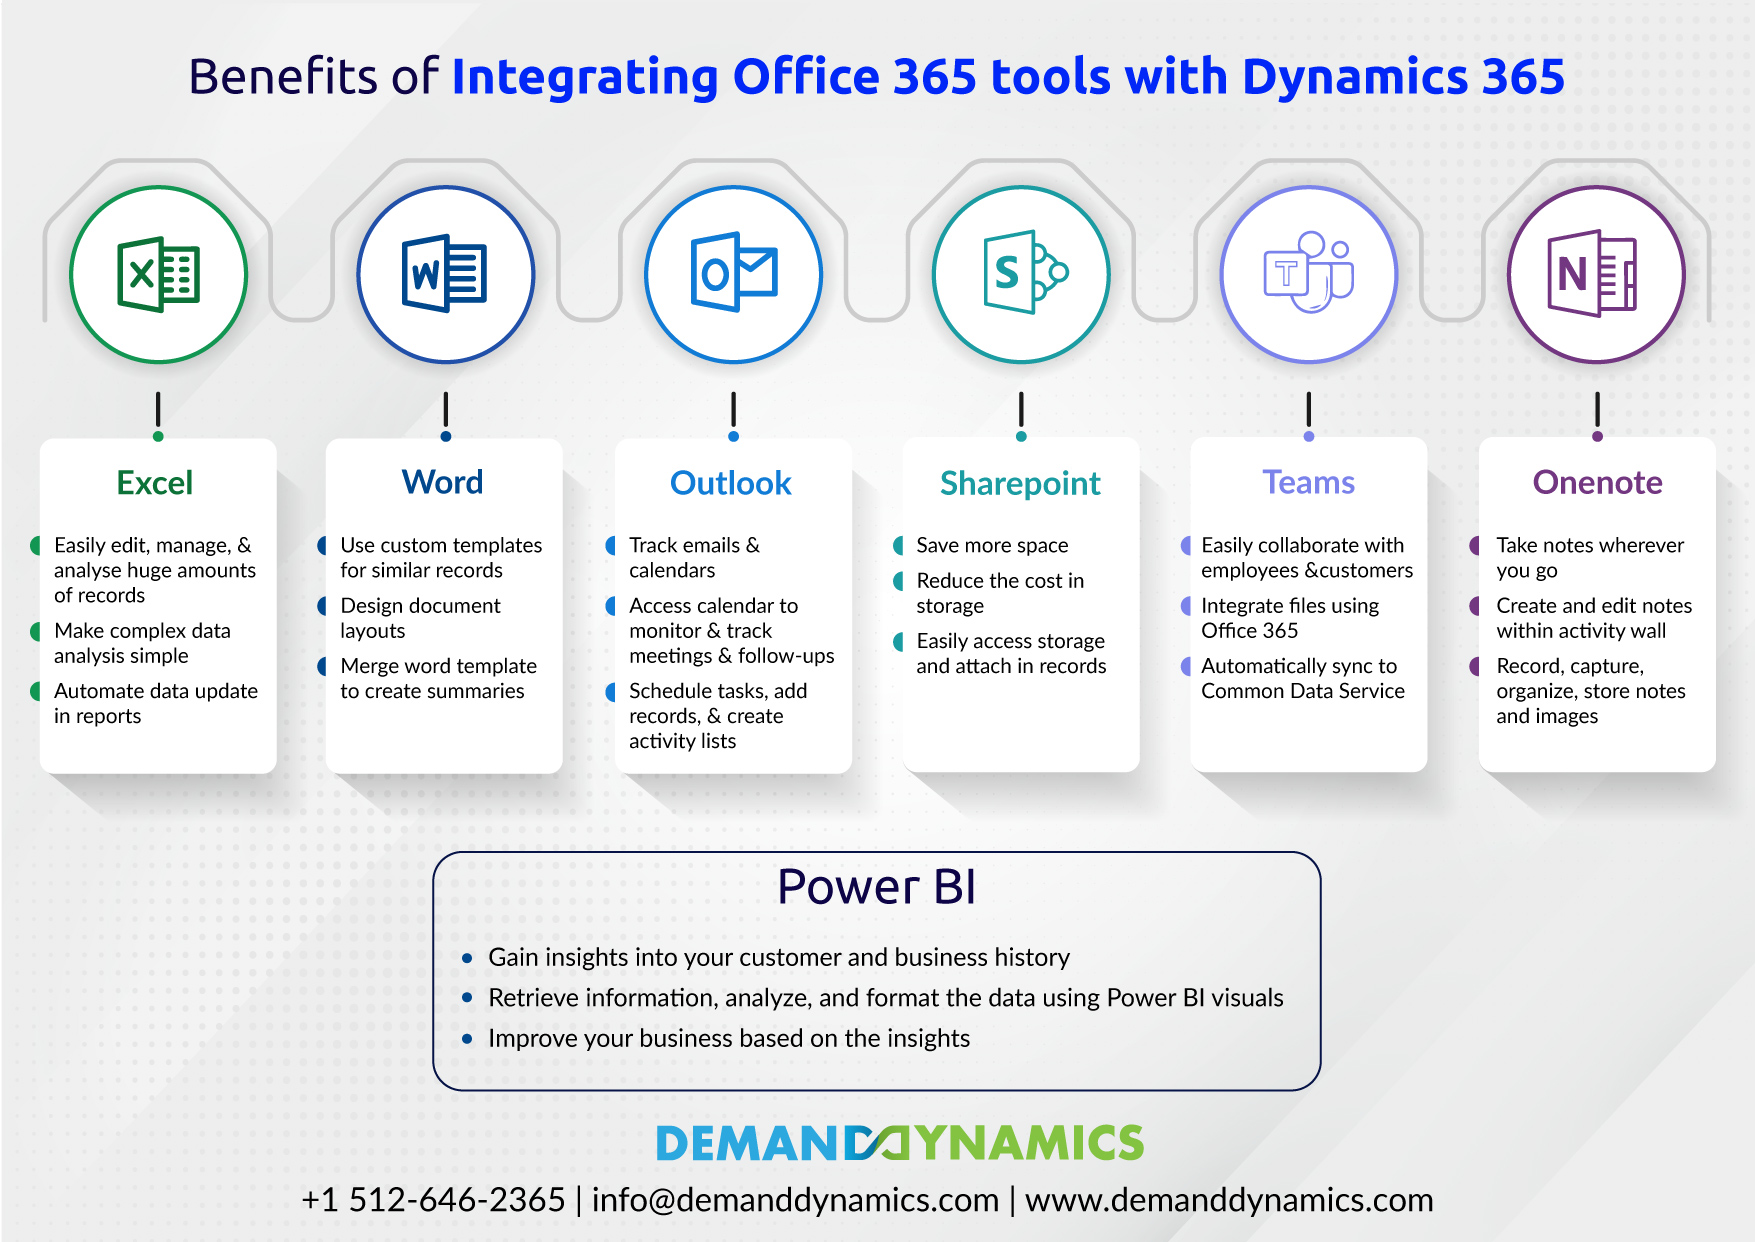 Integration of Office 365 with Dynamics 365